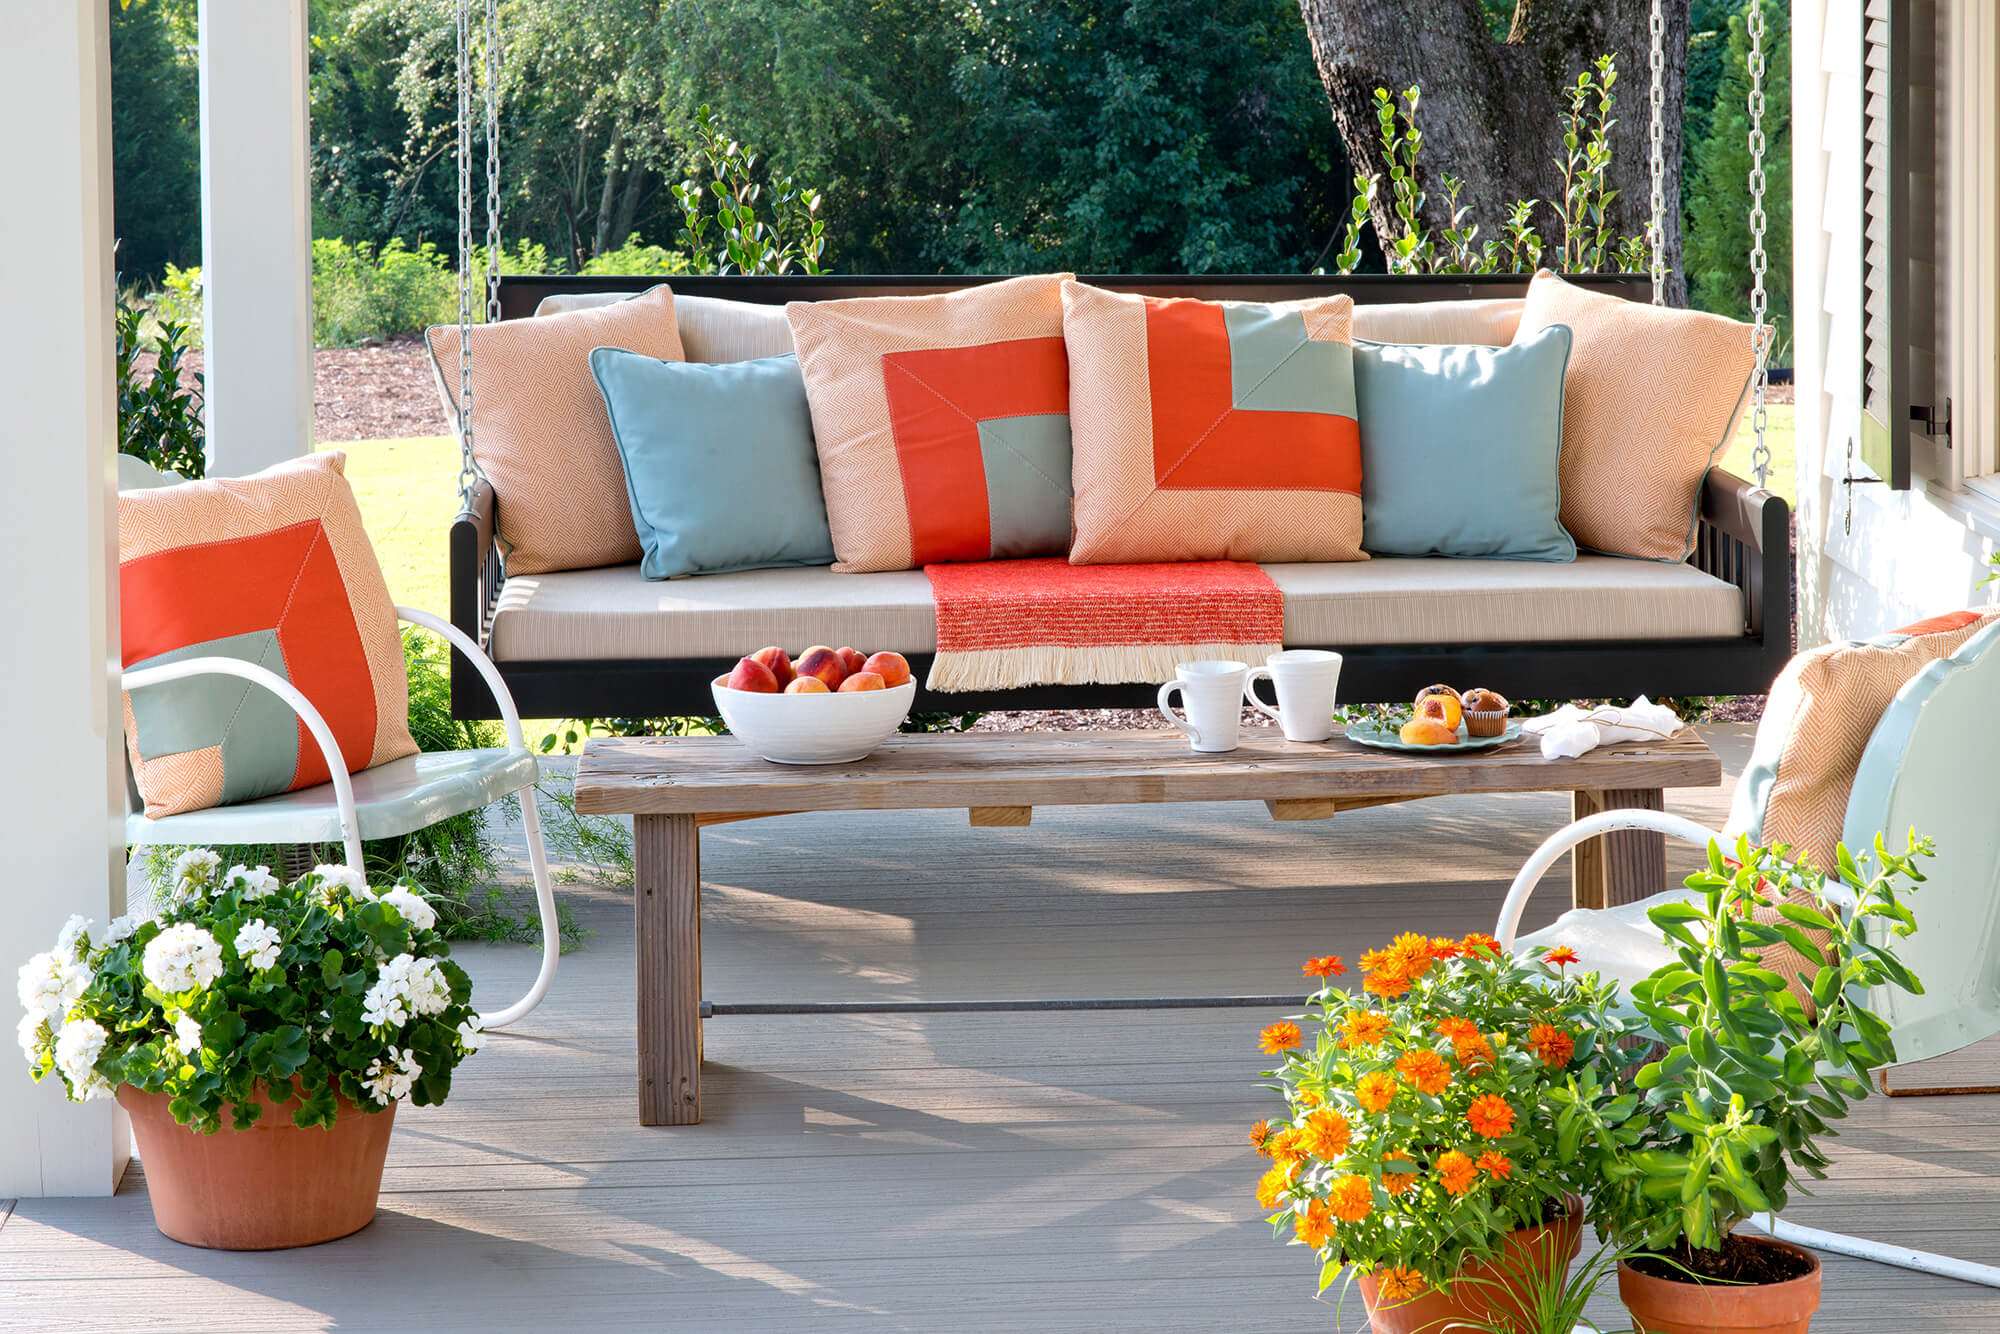 An outdoor porch swing lined with teal and peach colored decorative throw pillows